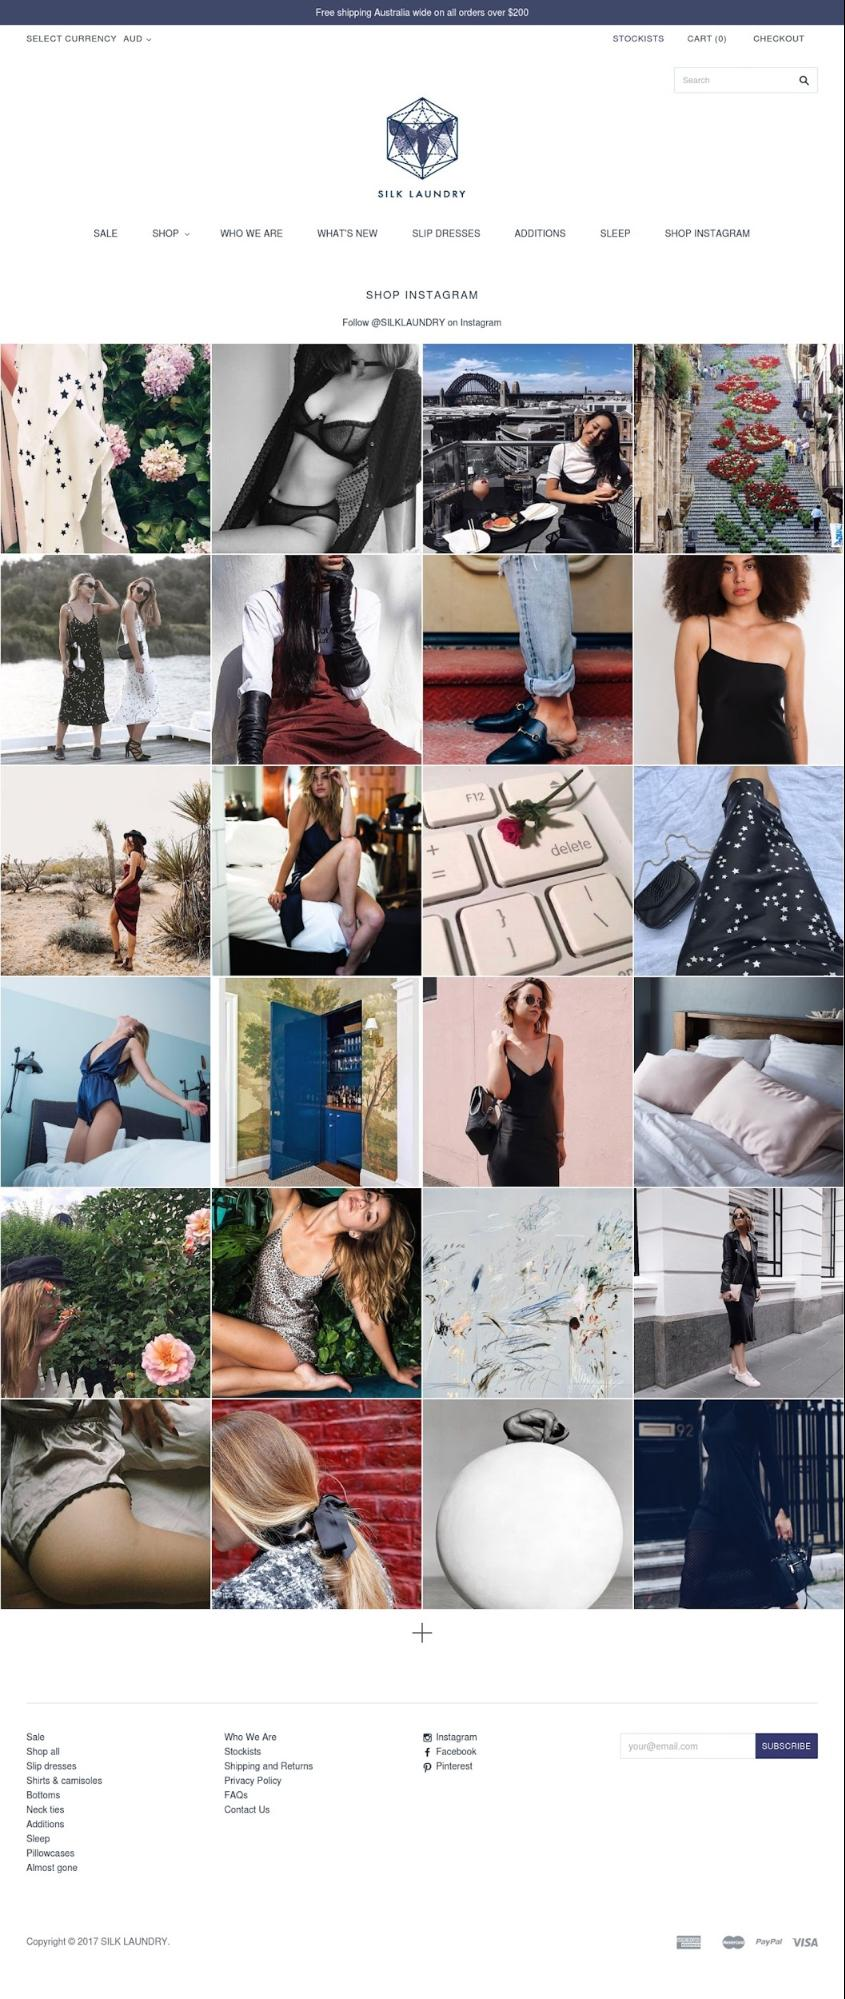 Successful Marketing Campaigns: Silk laundry Shop instagram page